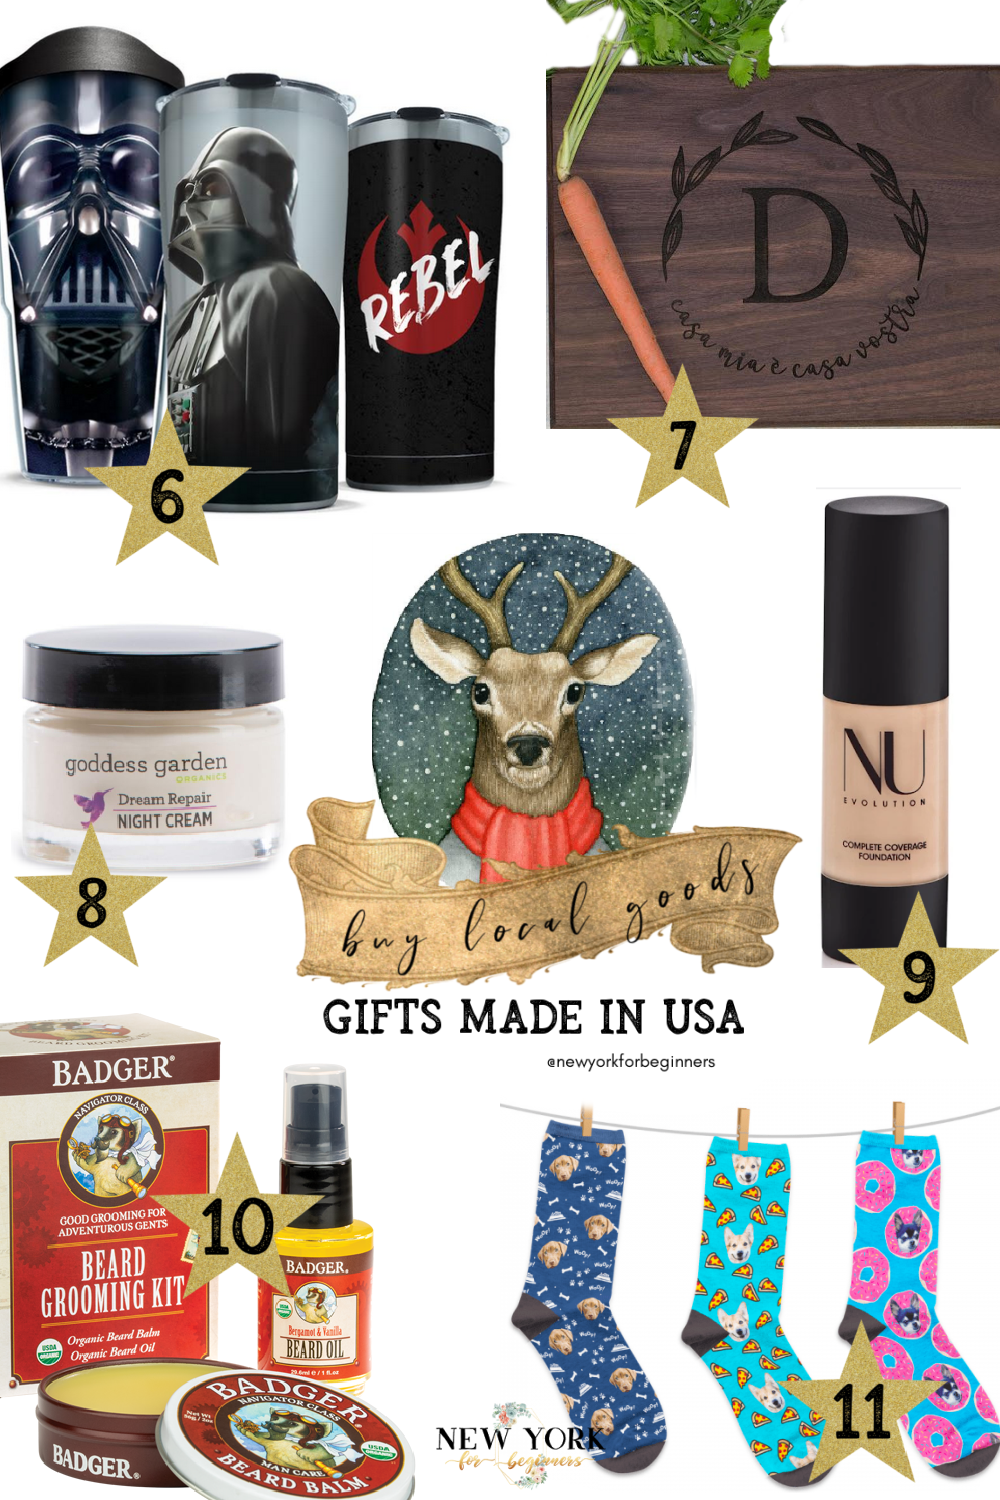 Gifts made in USA for the whole family 2